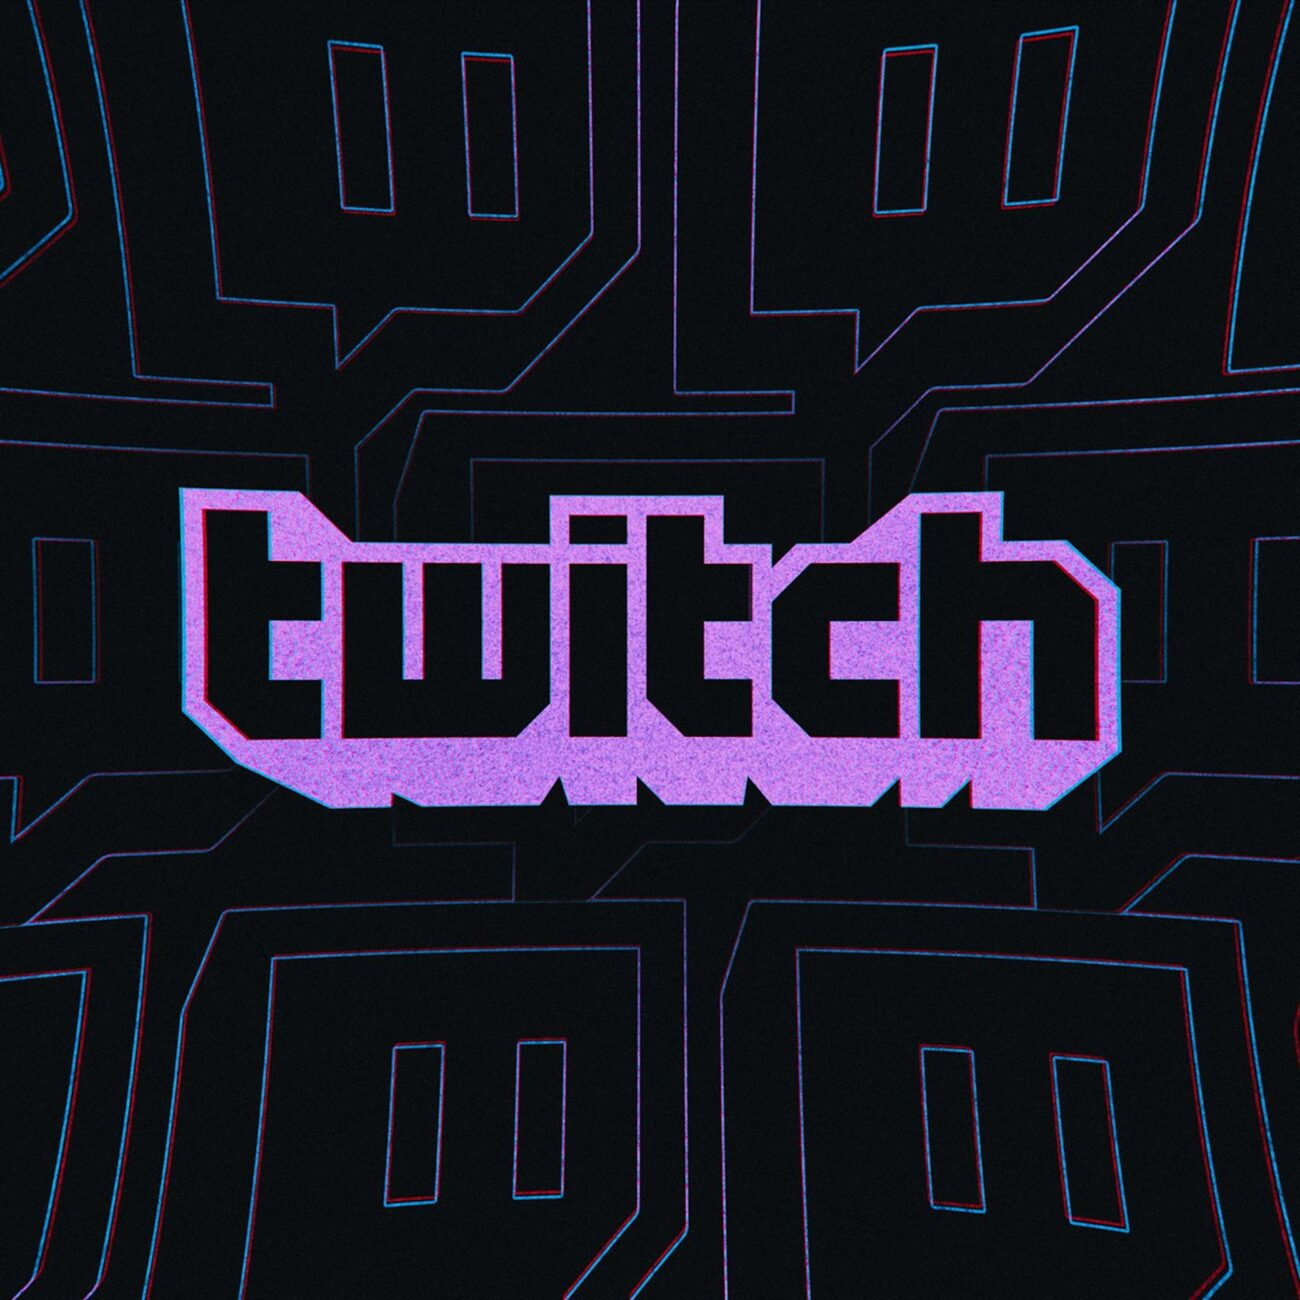 Need something new to watch on Twitch? They're doing a lot more than just gaming. Read about these new or underrated streamers on the platform.